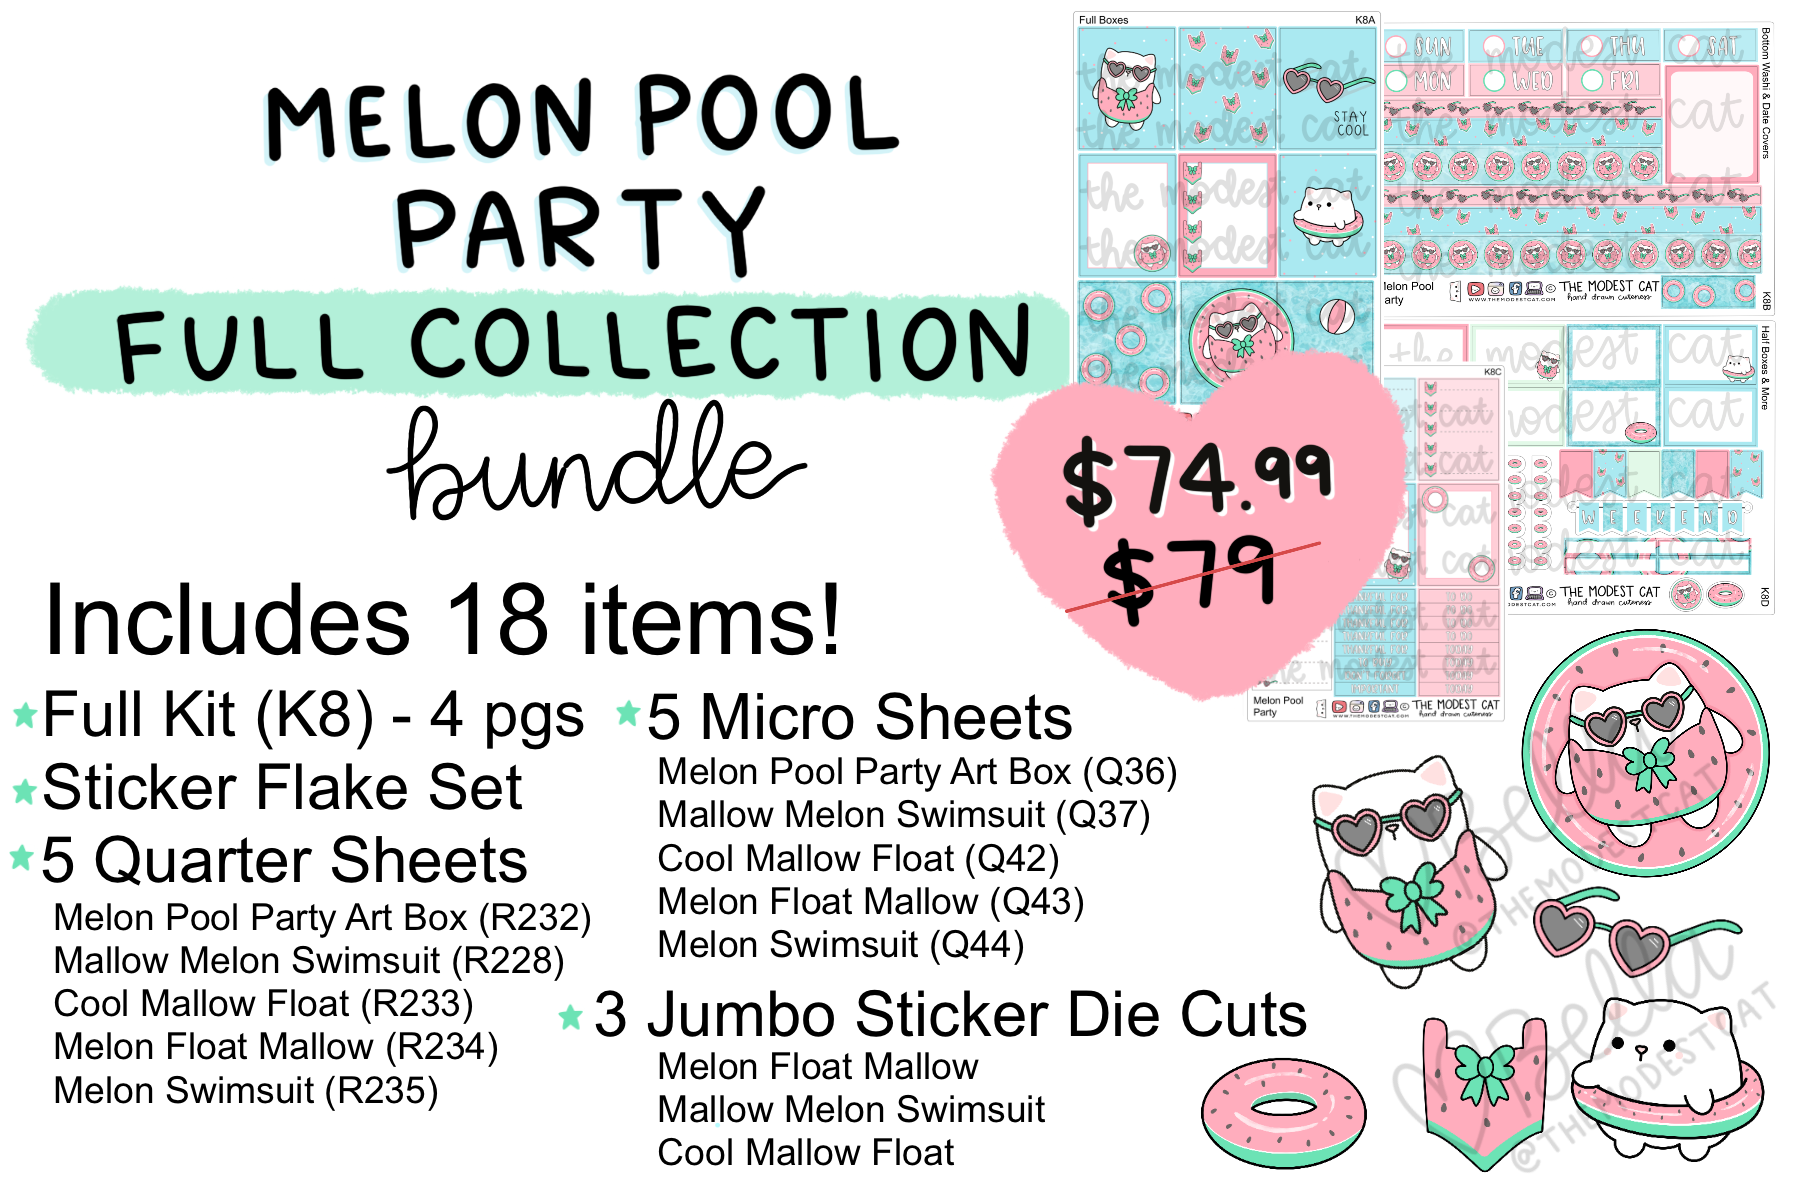 Melon Pool Party FULL Collection Bundle